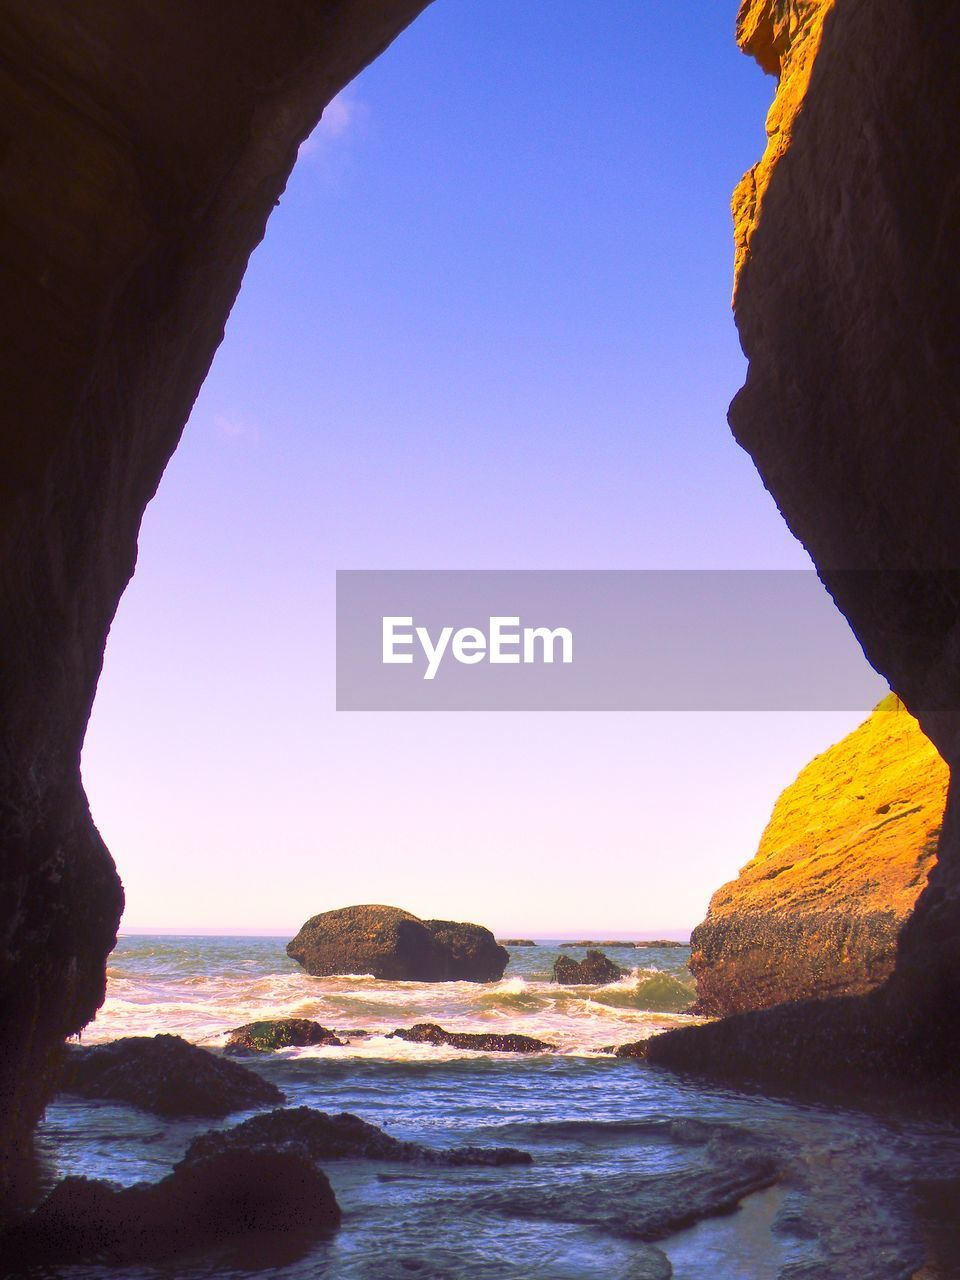 sea, rock formation, nature, rock - object, beauty in nature, scenics, tranquility, tranquil scene, clear sky, rock, no people, natural arch, horizon over water, outdoors, day, travel destinations, cliff, water, sky, beach, wave